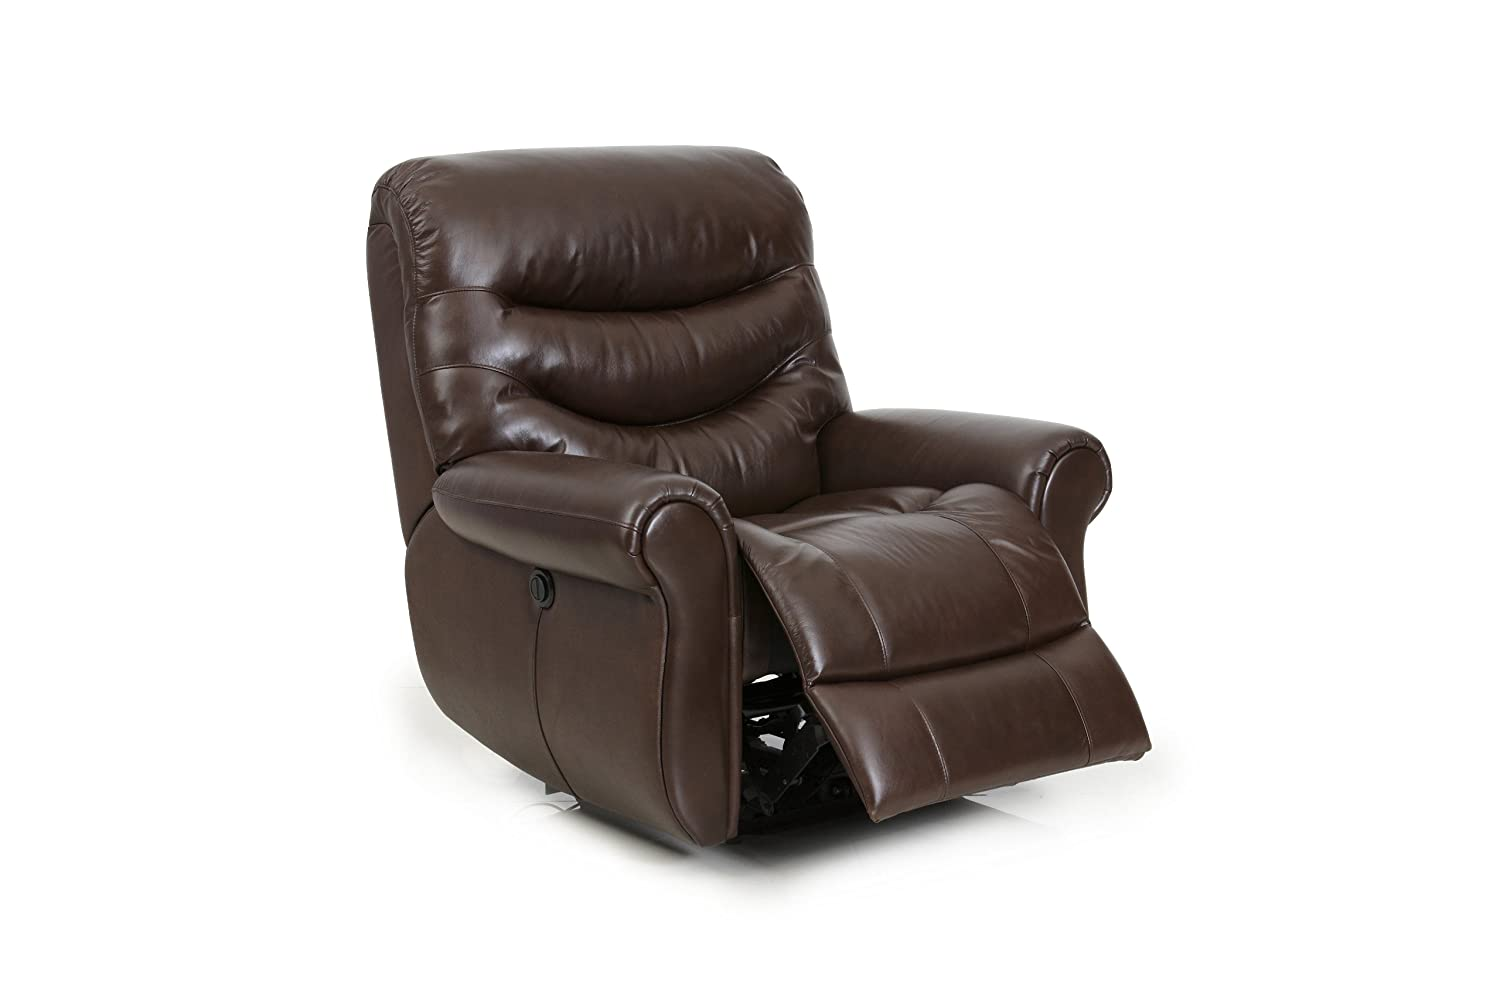 recliner jsp s powell alt catalog recliners furniture kohl